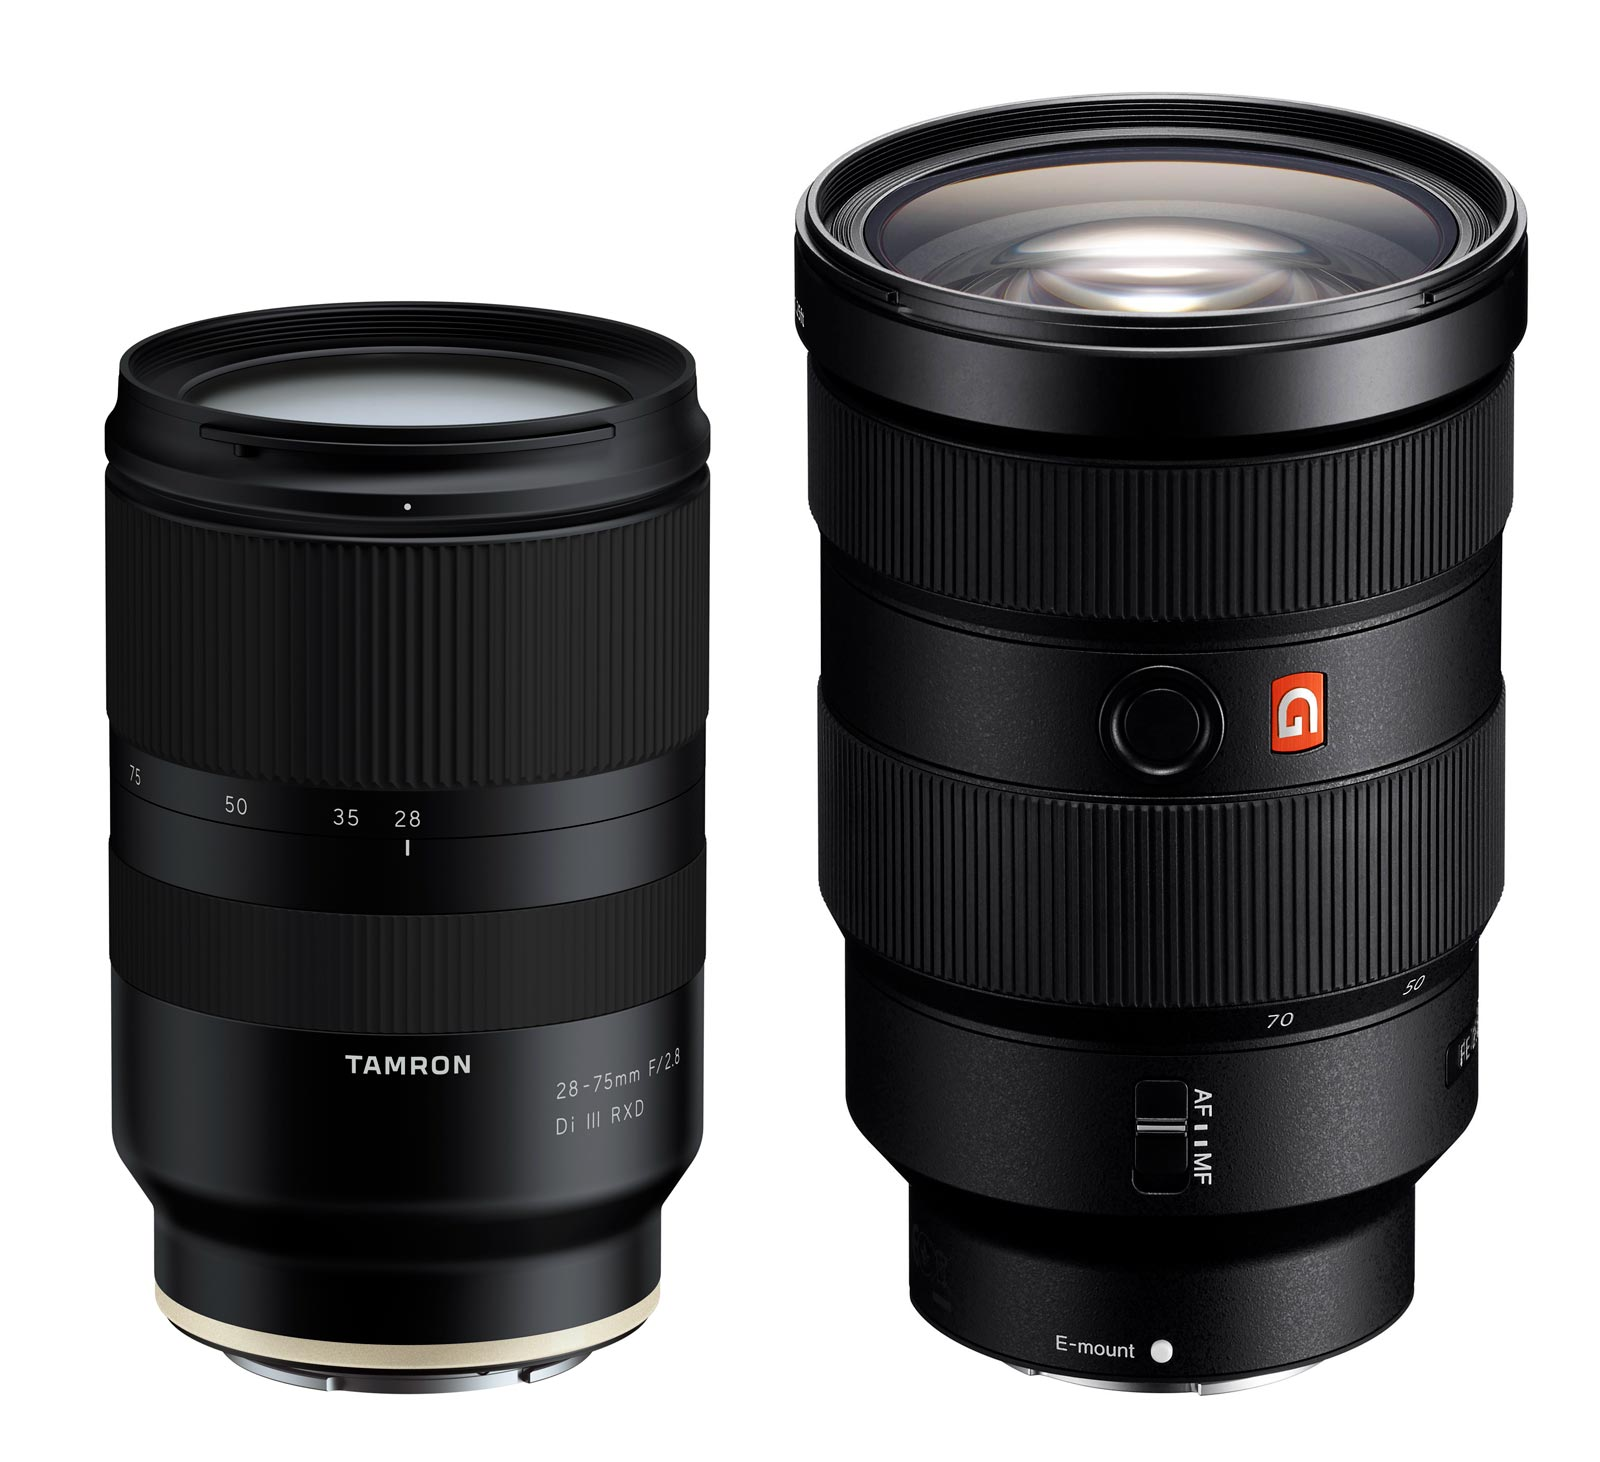 New Tamron 28 75 F Lens Their First For Sony Fe Mount Light 400mm F28 Gm Oss A Rough Size Comparison The Rendering Compared To Photograph Of 24 70 With Sizes Based On Standard